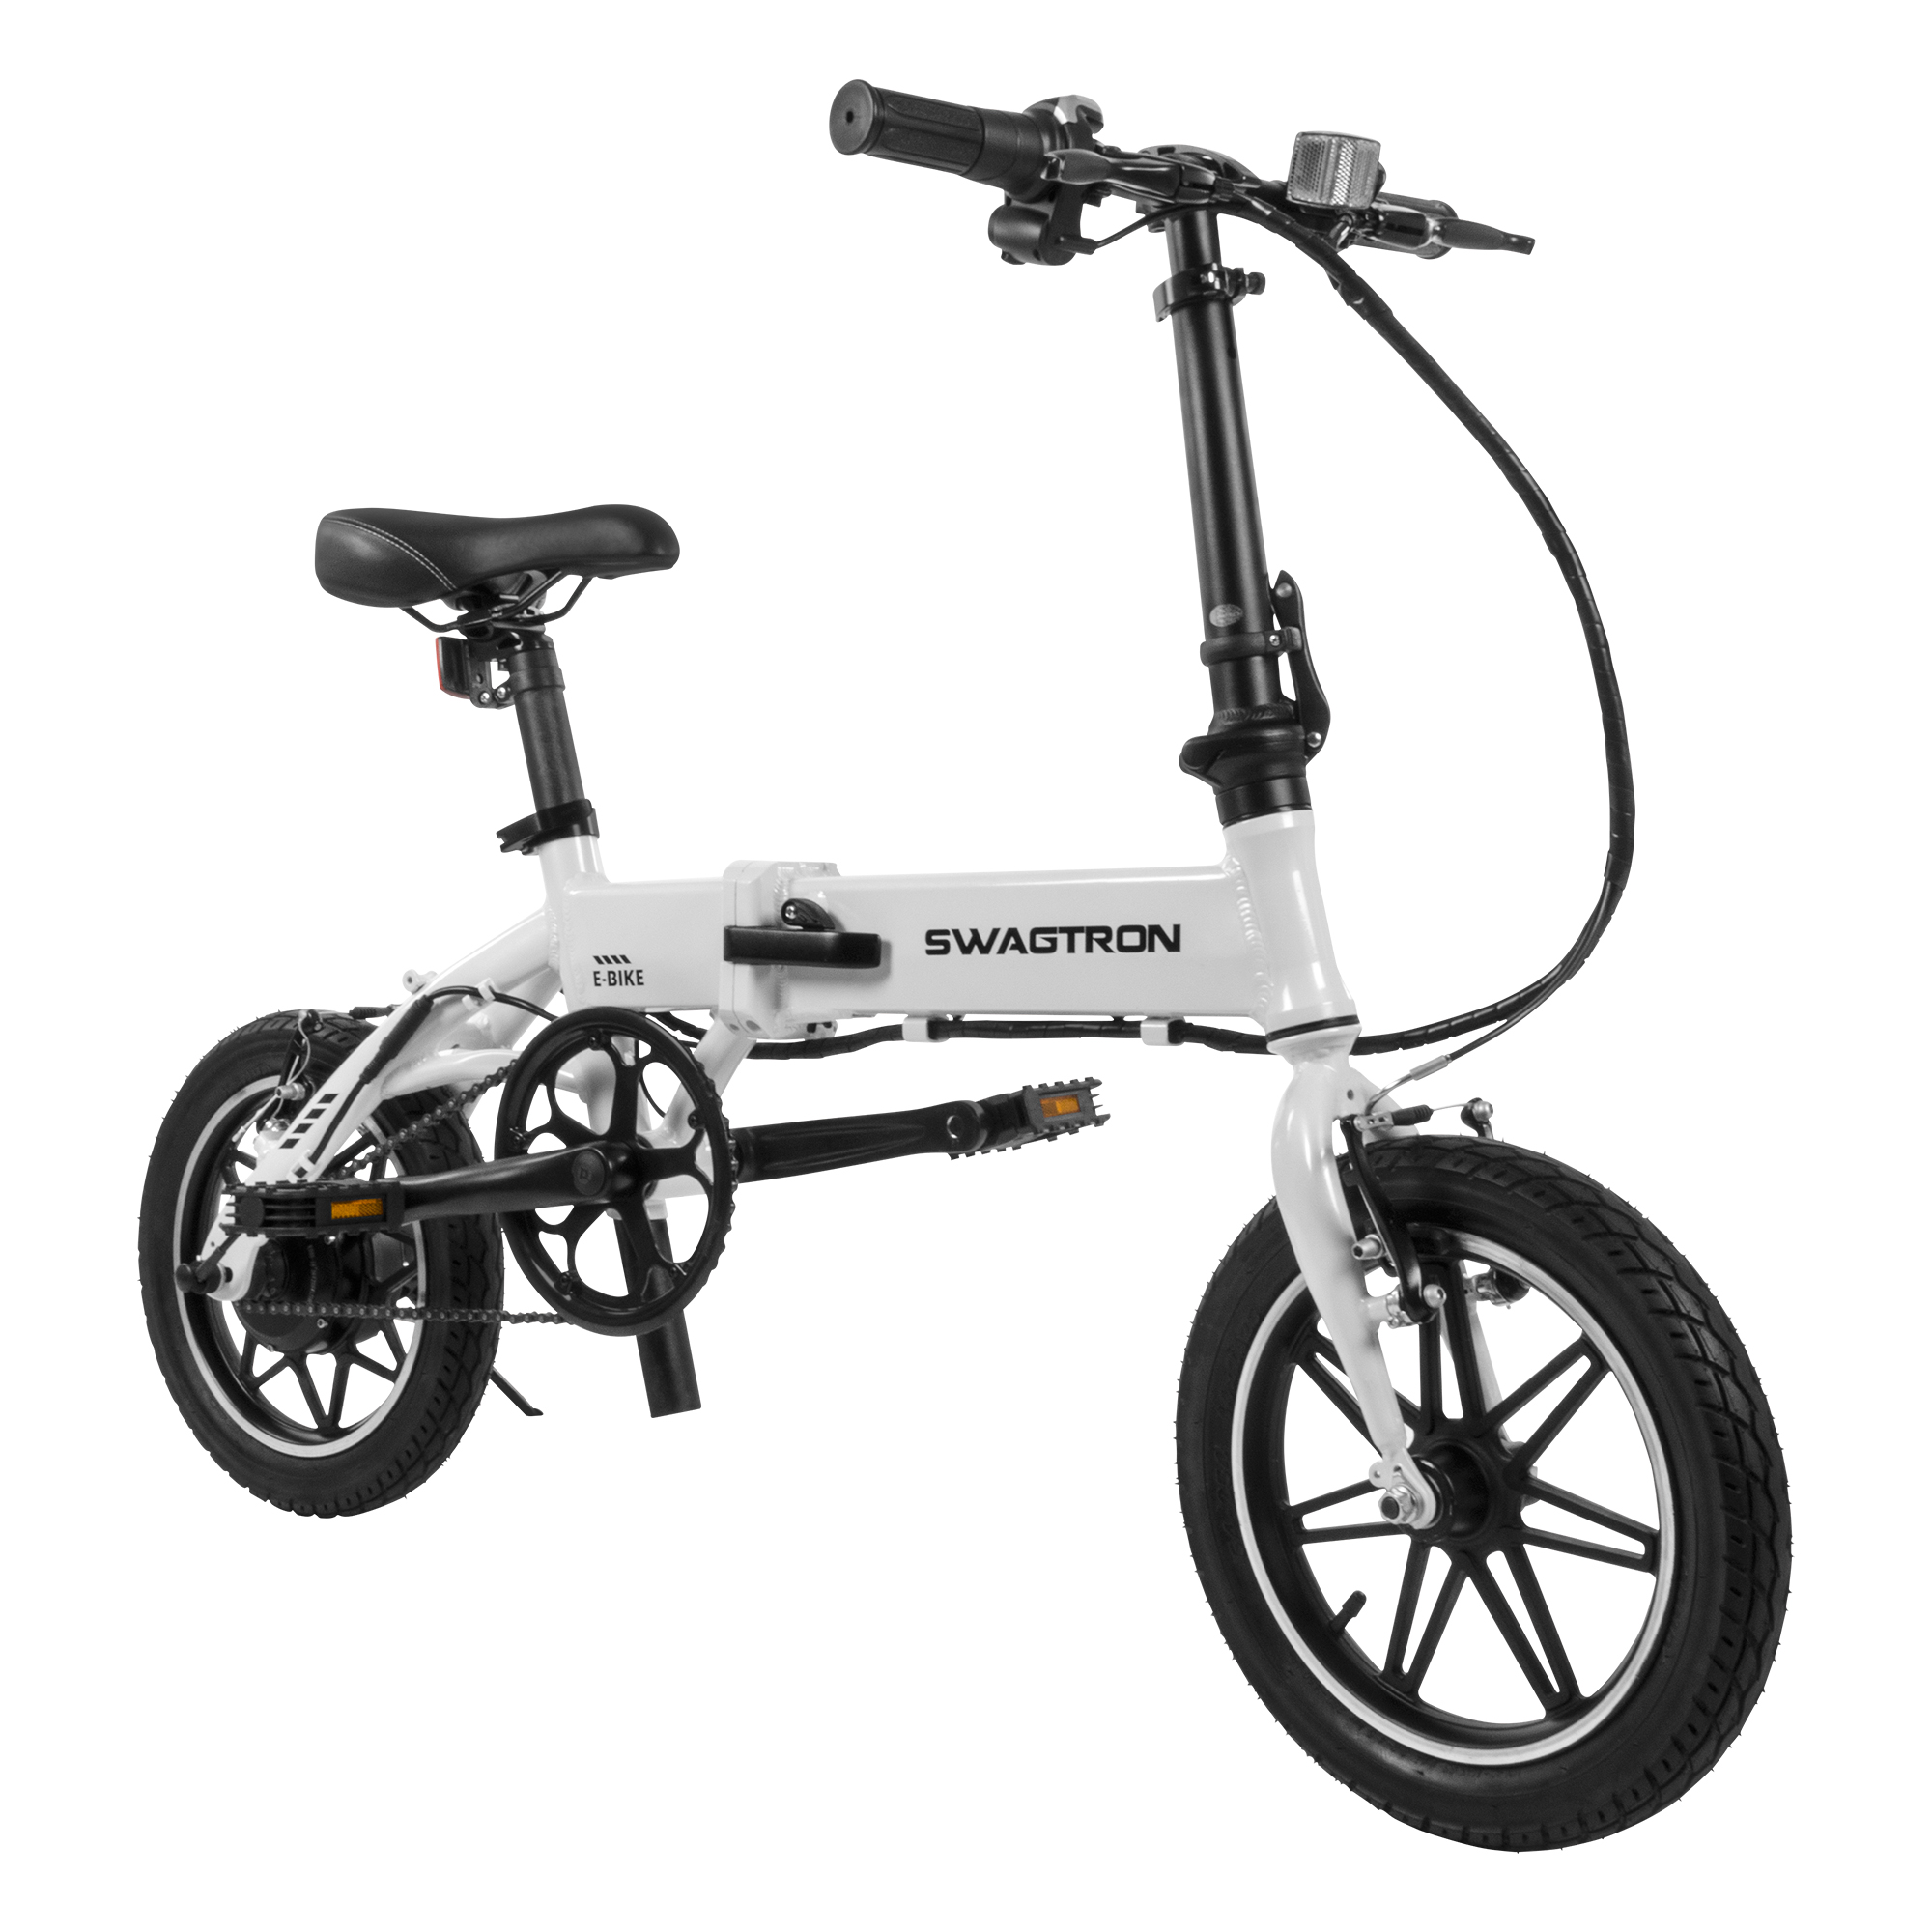 Swagtron Introduces Eb 5 Folding Electric Bike For Eco